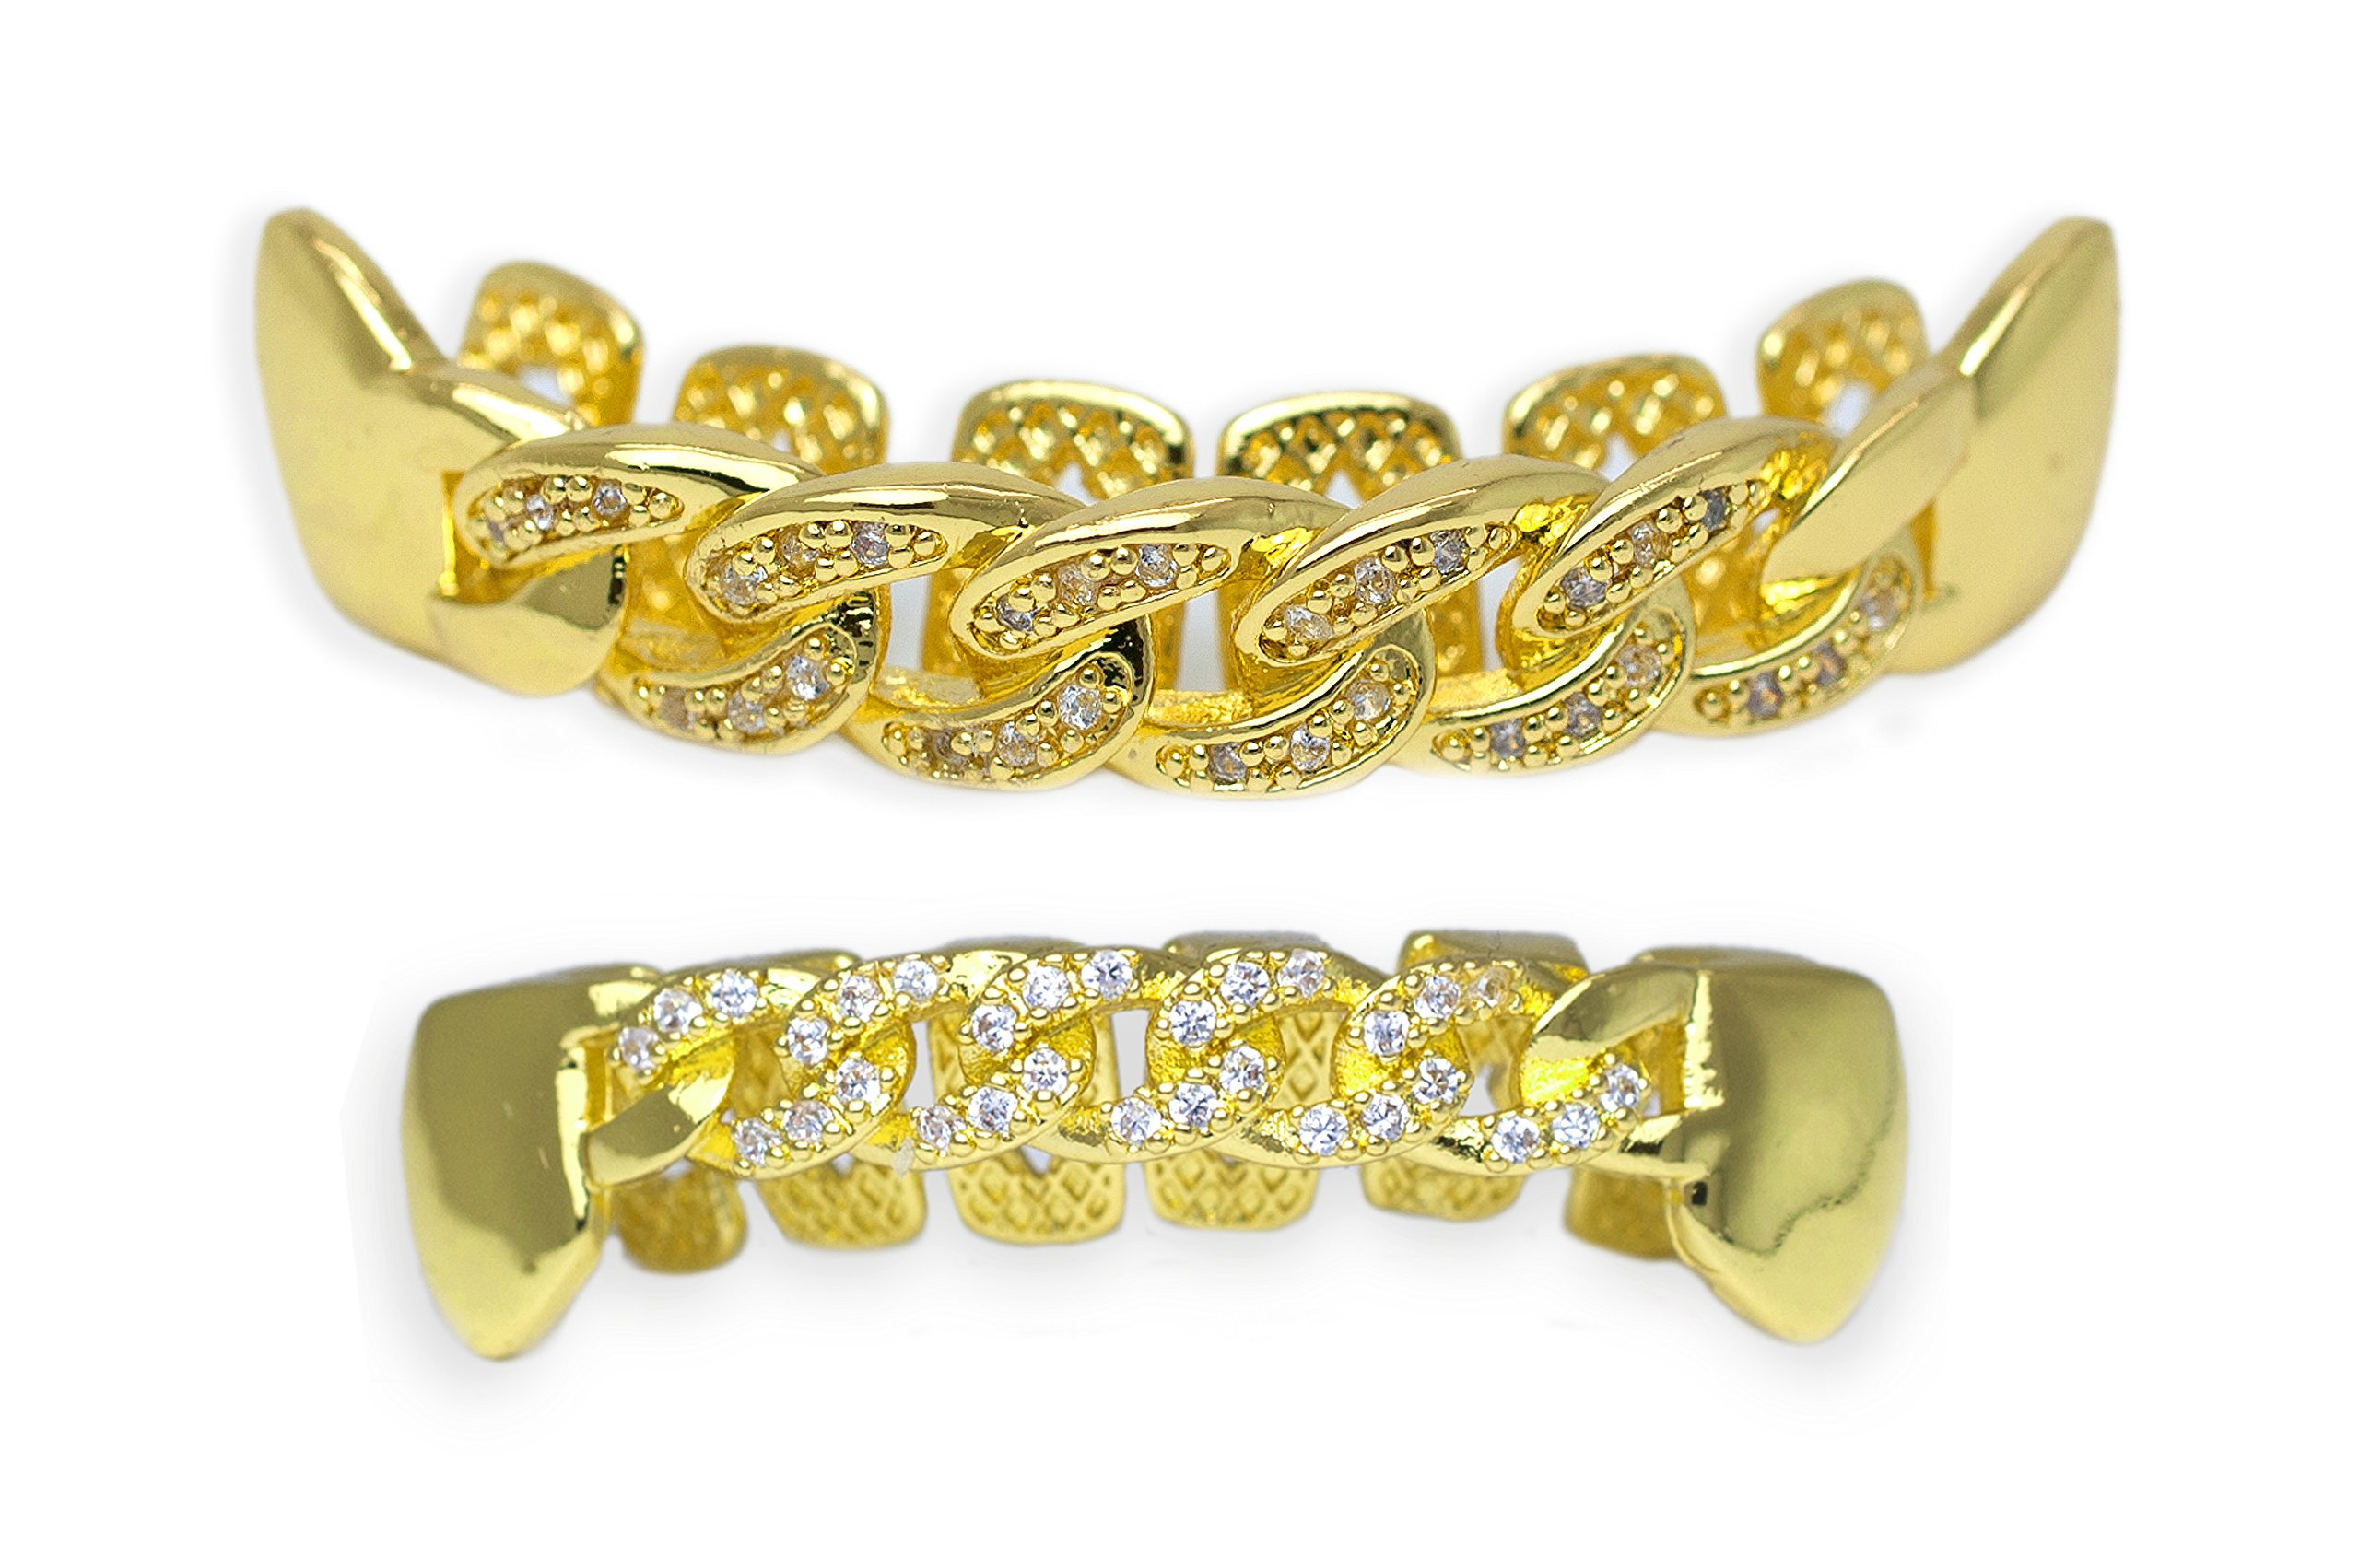 Yellow Gold-Tone Iced Out Hip Hop Bling Open Face Cubic Zirconia (CZ) Cuban Link Removable Grill Grillz Combo Set with Mold Bar by iRockBling